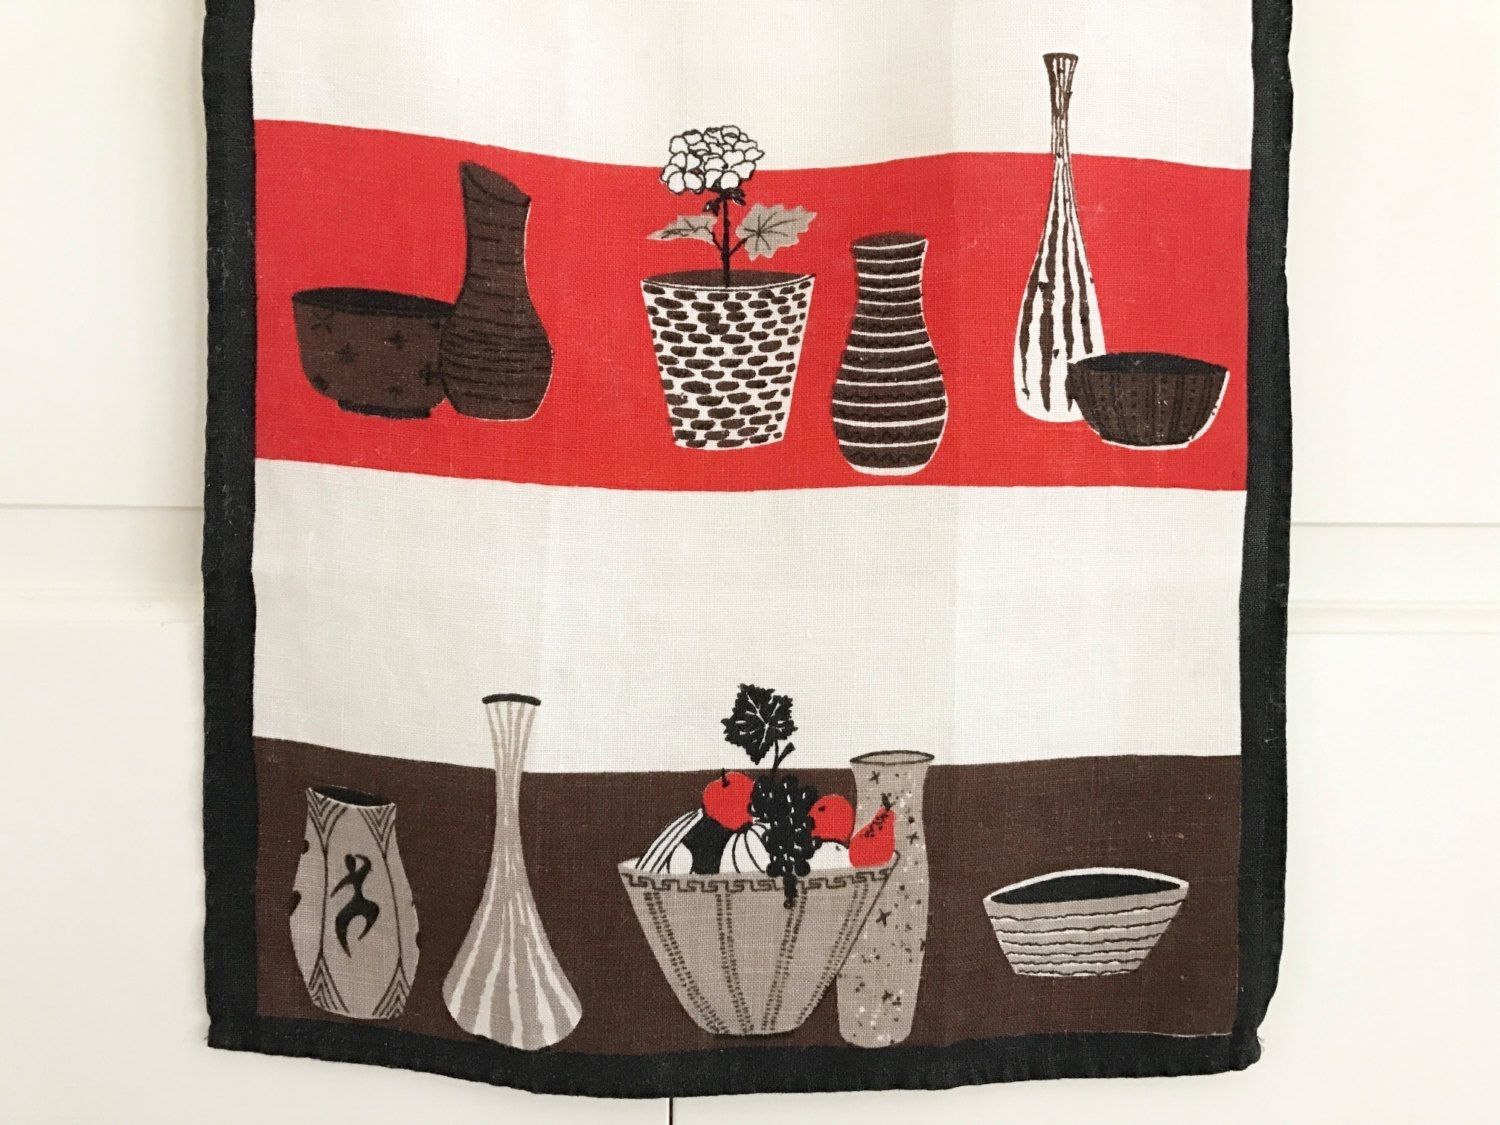 Mid Century Modern, Tea Towel, Cool Ceramic Vases, Bowls, Linen Throughout Most Current Mid Century Textile Wall Art (View 7 of 15)